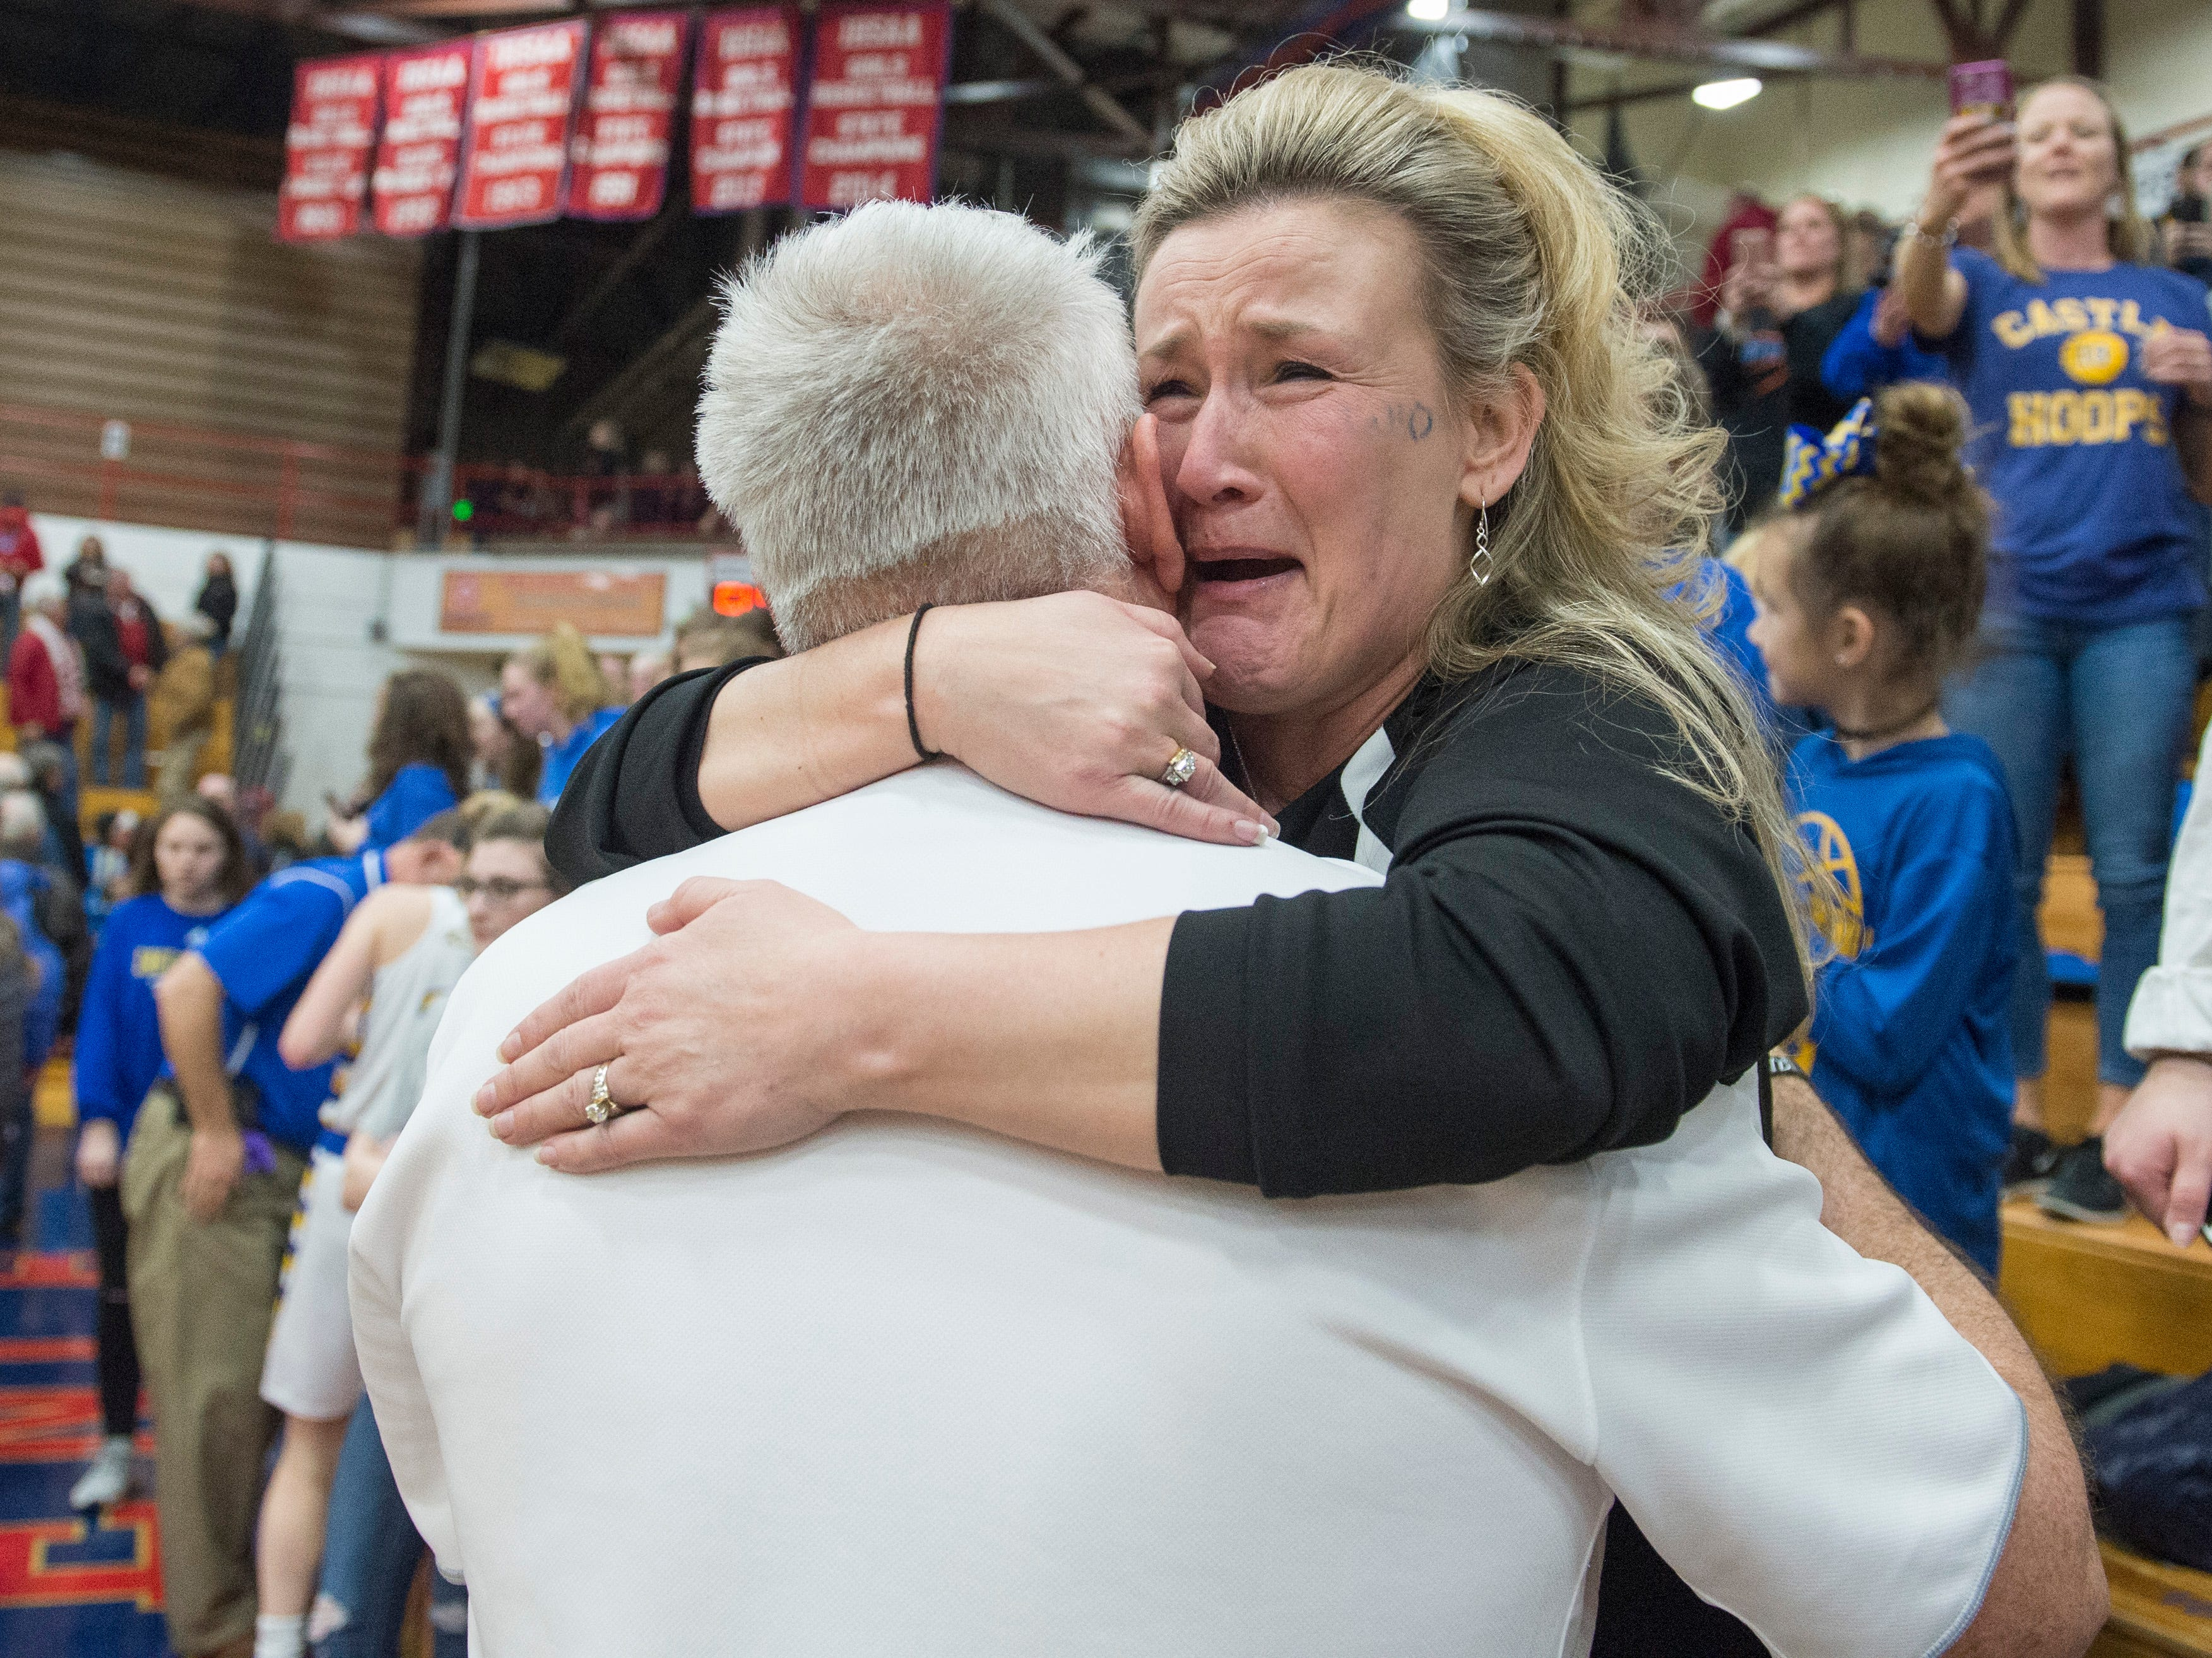 Castle Head Coach Robert Meier's wife Scarlett gives Meier a hug as tears run down her face as the Knights celebrate theirIHSAA Girls Basketball Class 4A Regional Championship game win over the Bedford North Lawrence Lady Stars at the Stars Field House in Bedford, Ind. Saturday, Feb. 9, 2019.